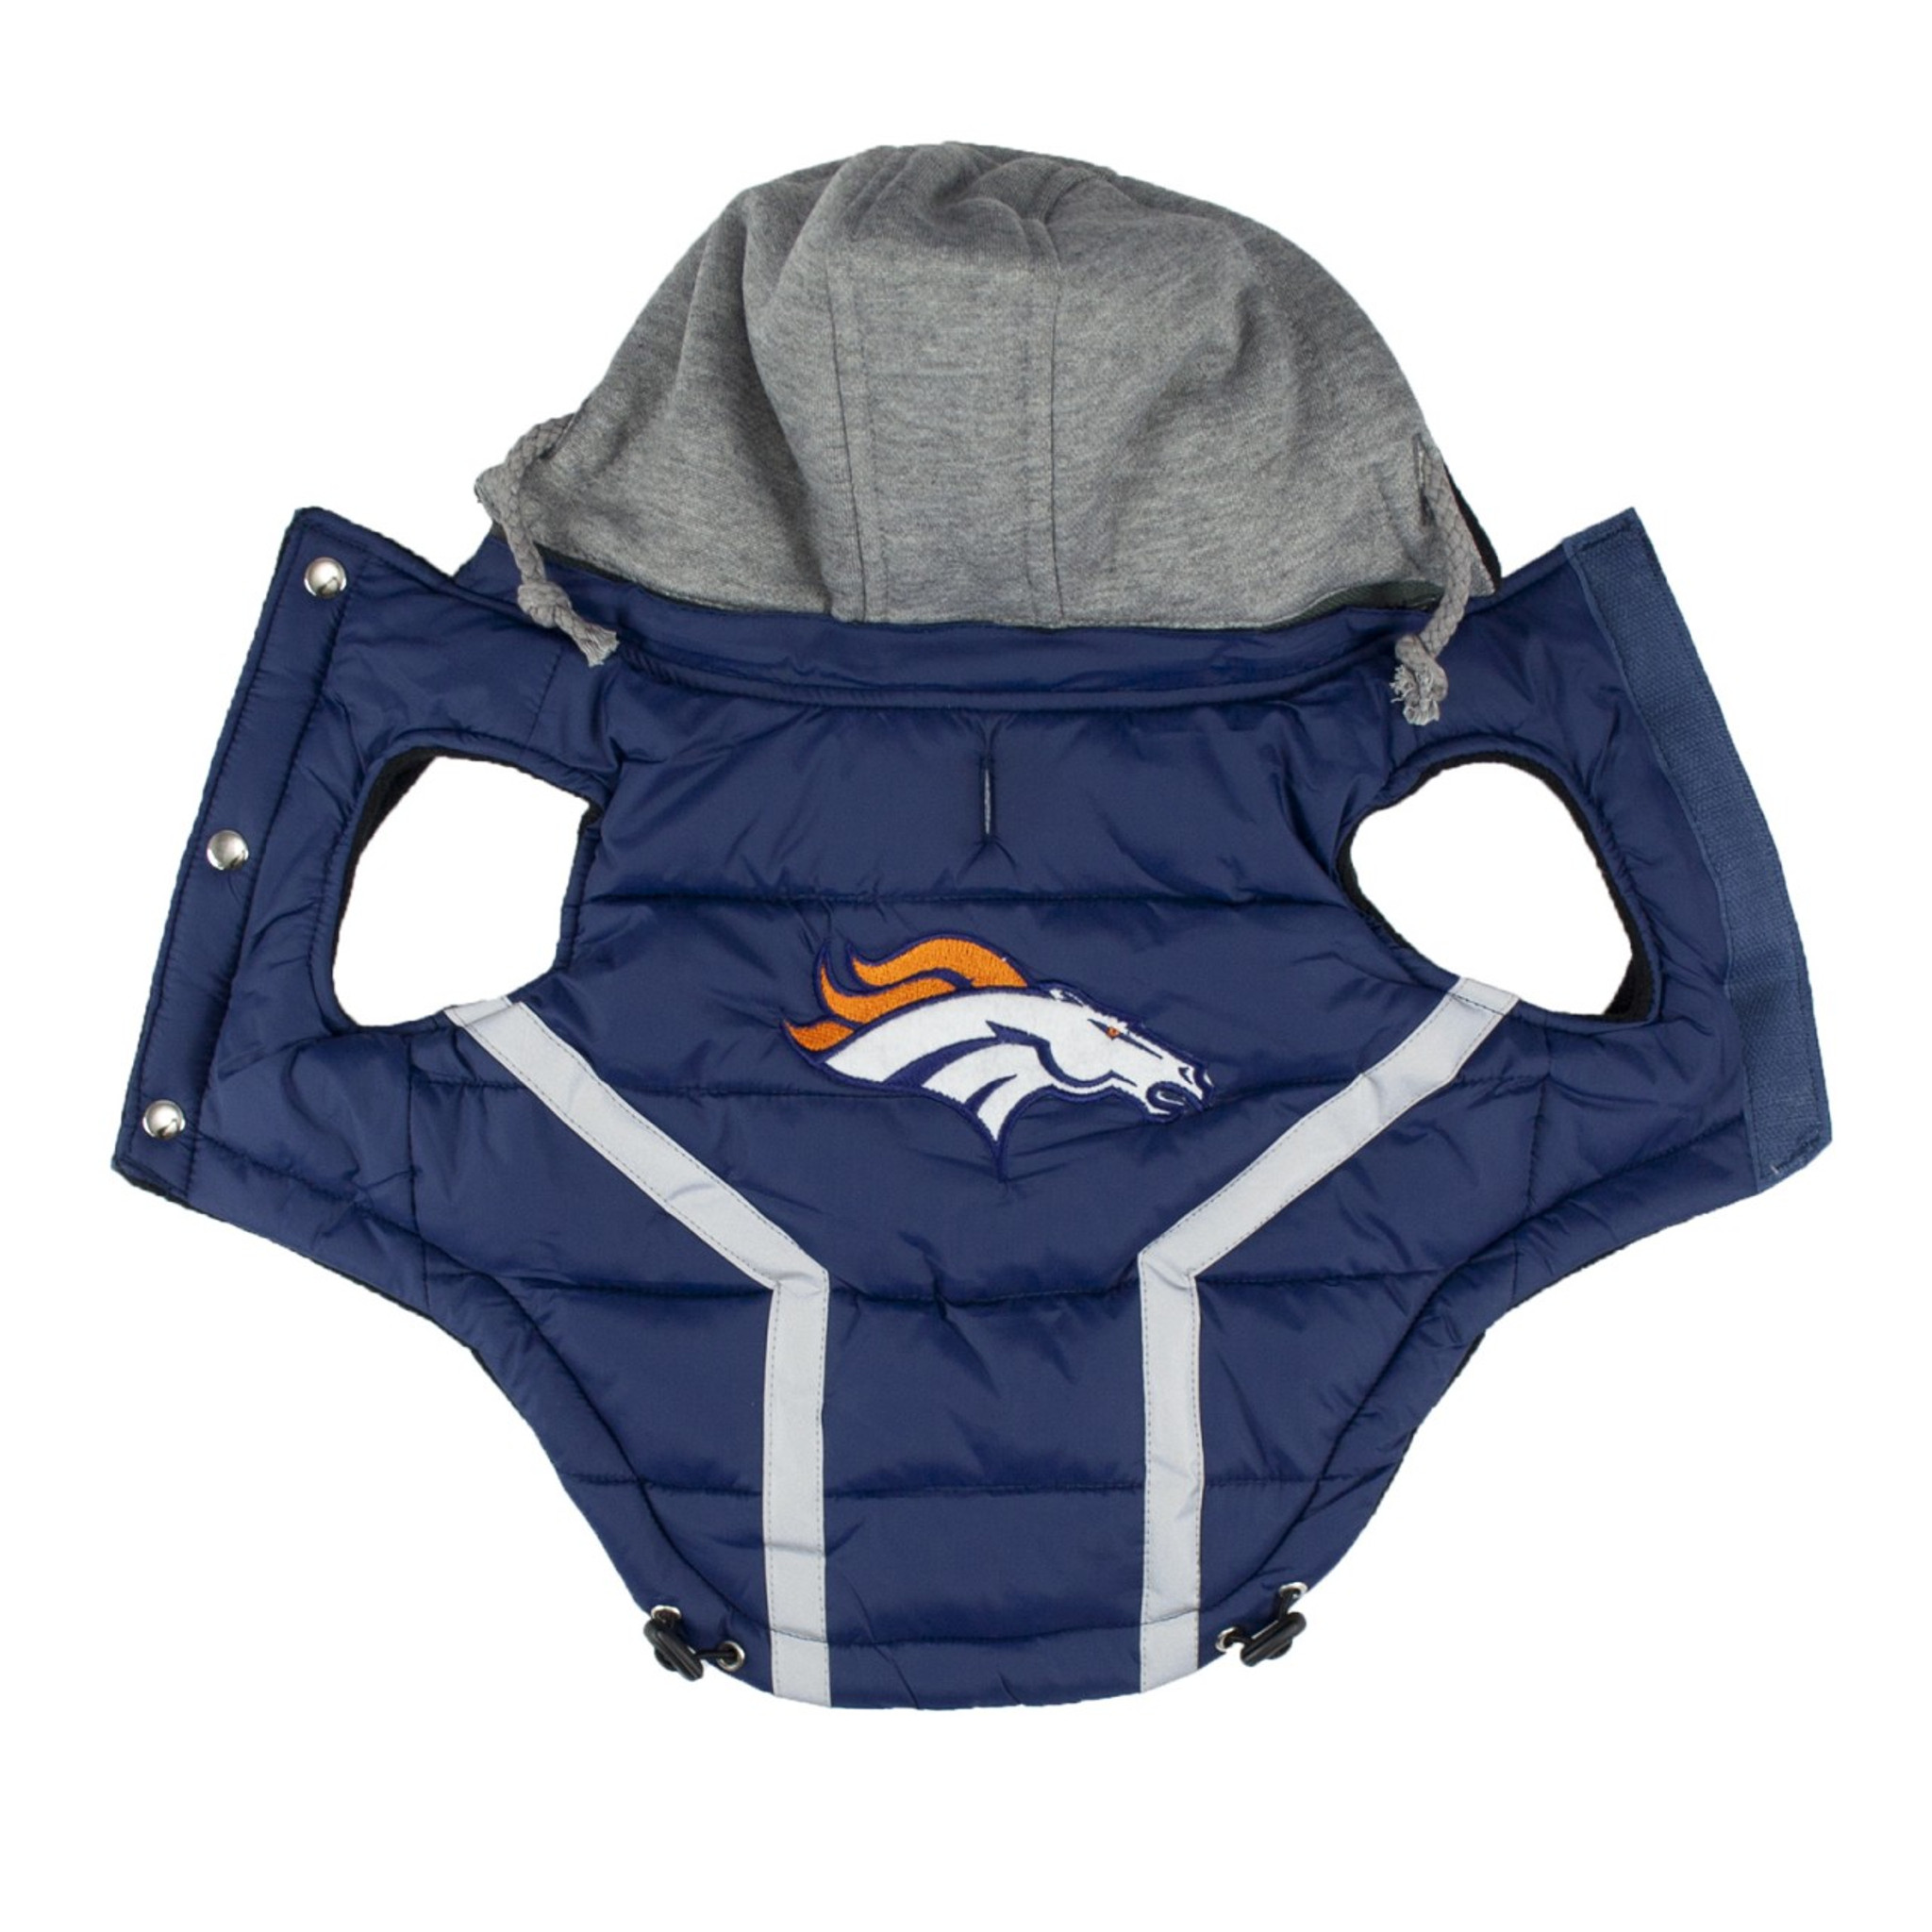 buy online a2ed1 2bb46 NFL Denver Broncos Dog Puffer Vest